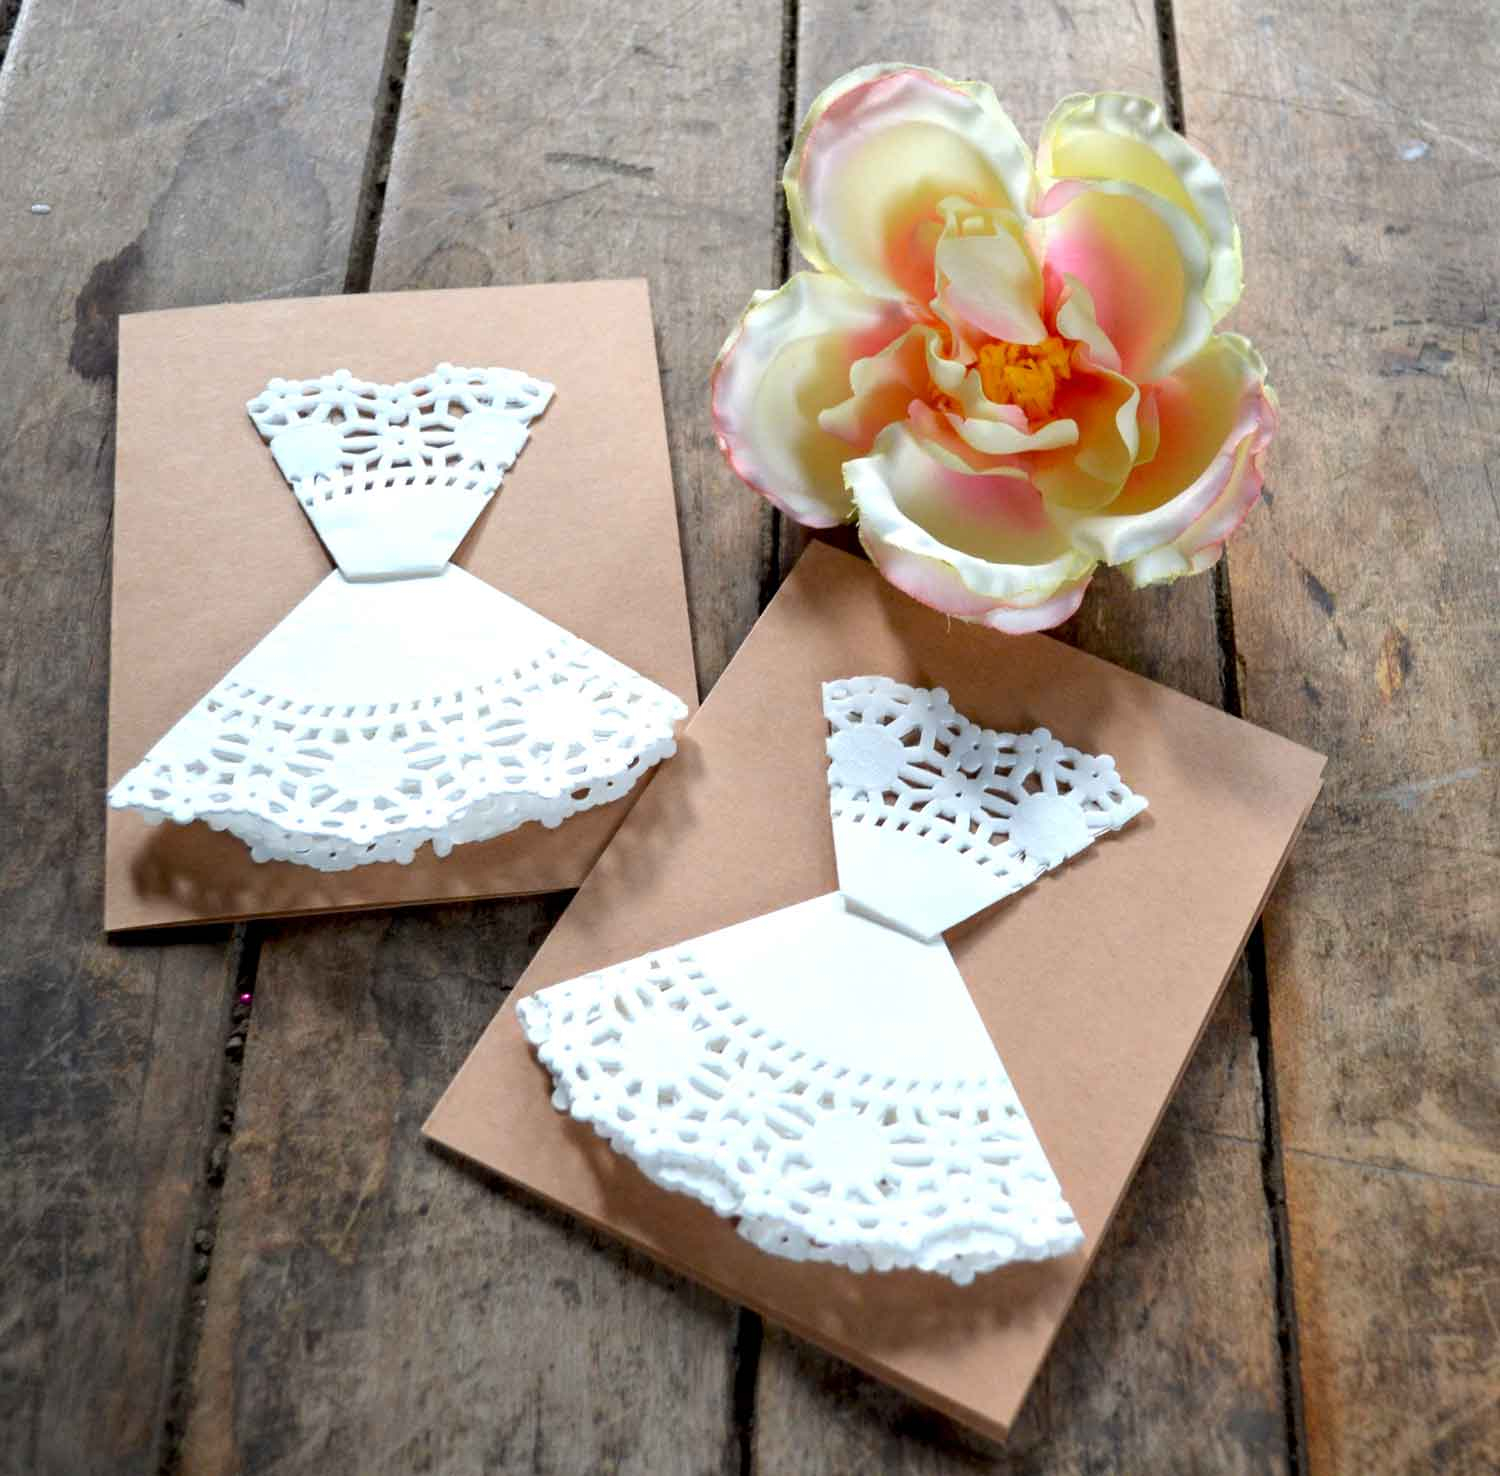 10 Most Recommended Diy Bridal Shower Invitations Ideas diy bridal shower invitations ever after in the woods 2020